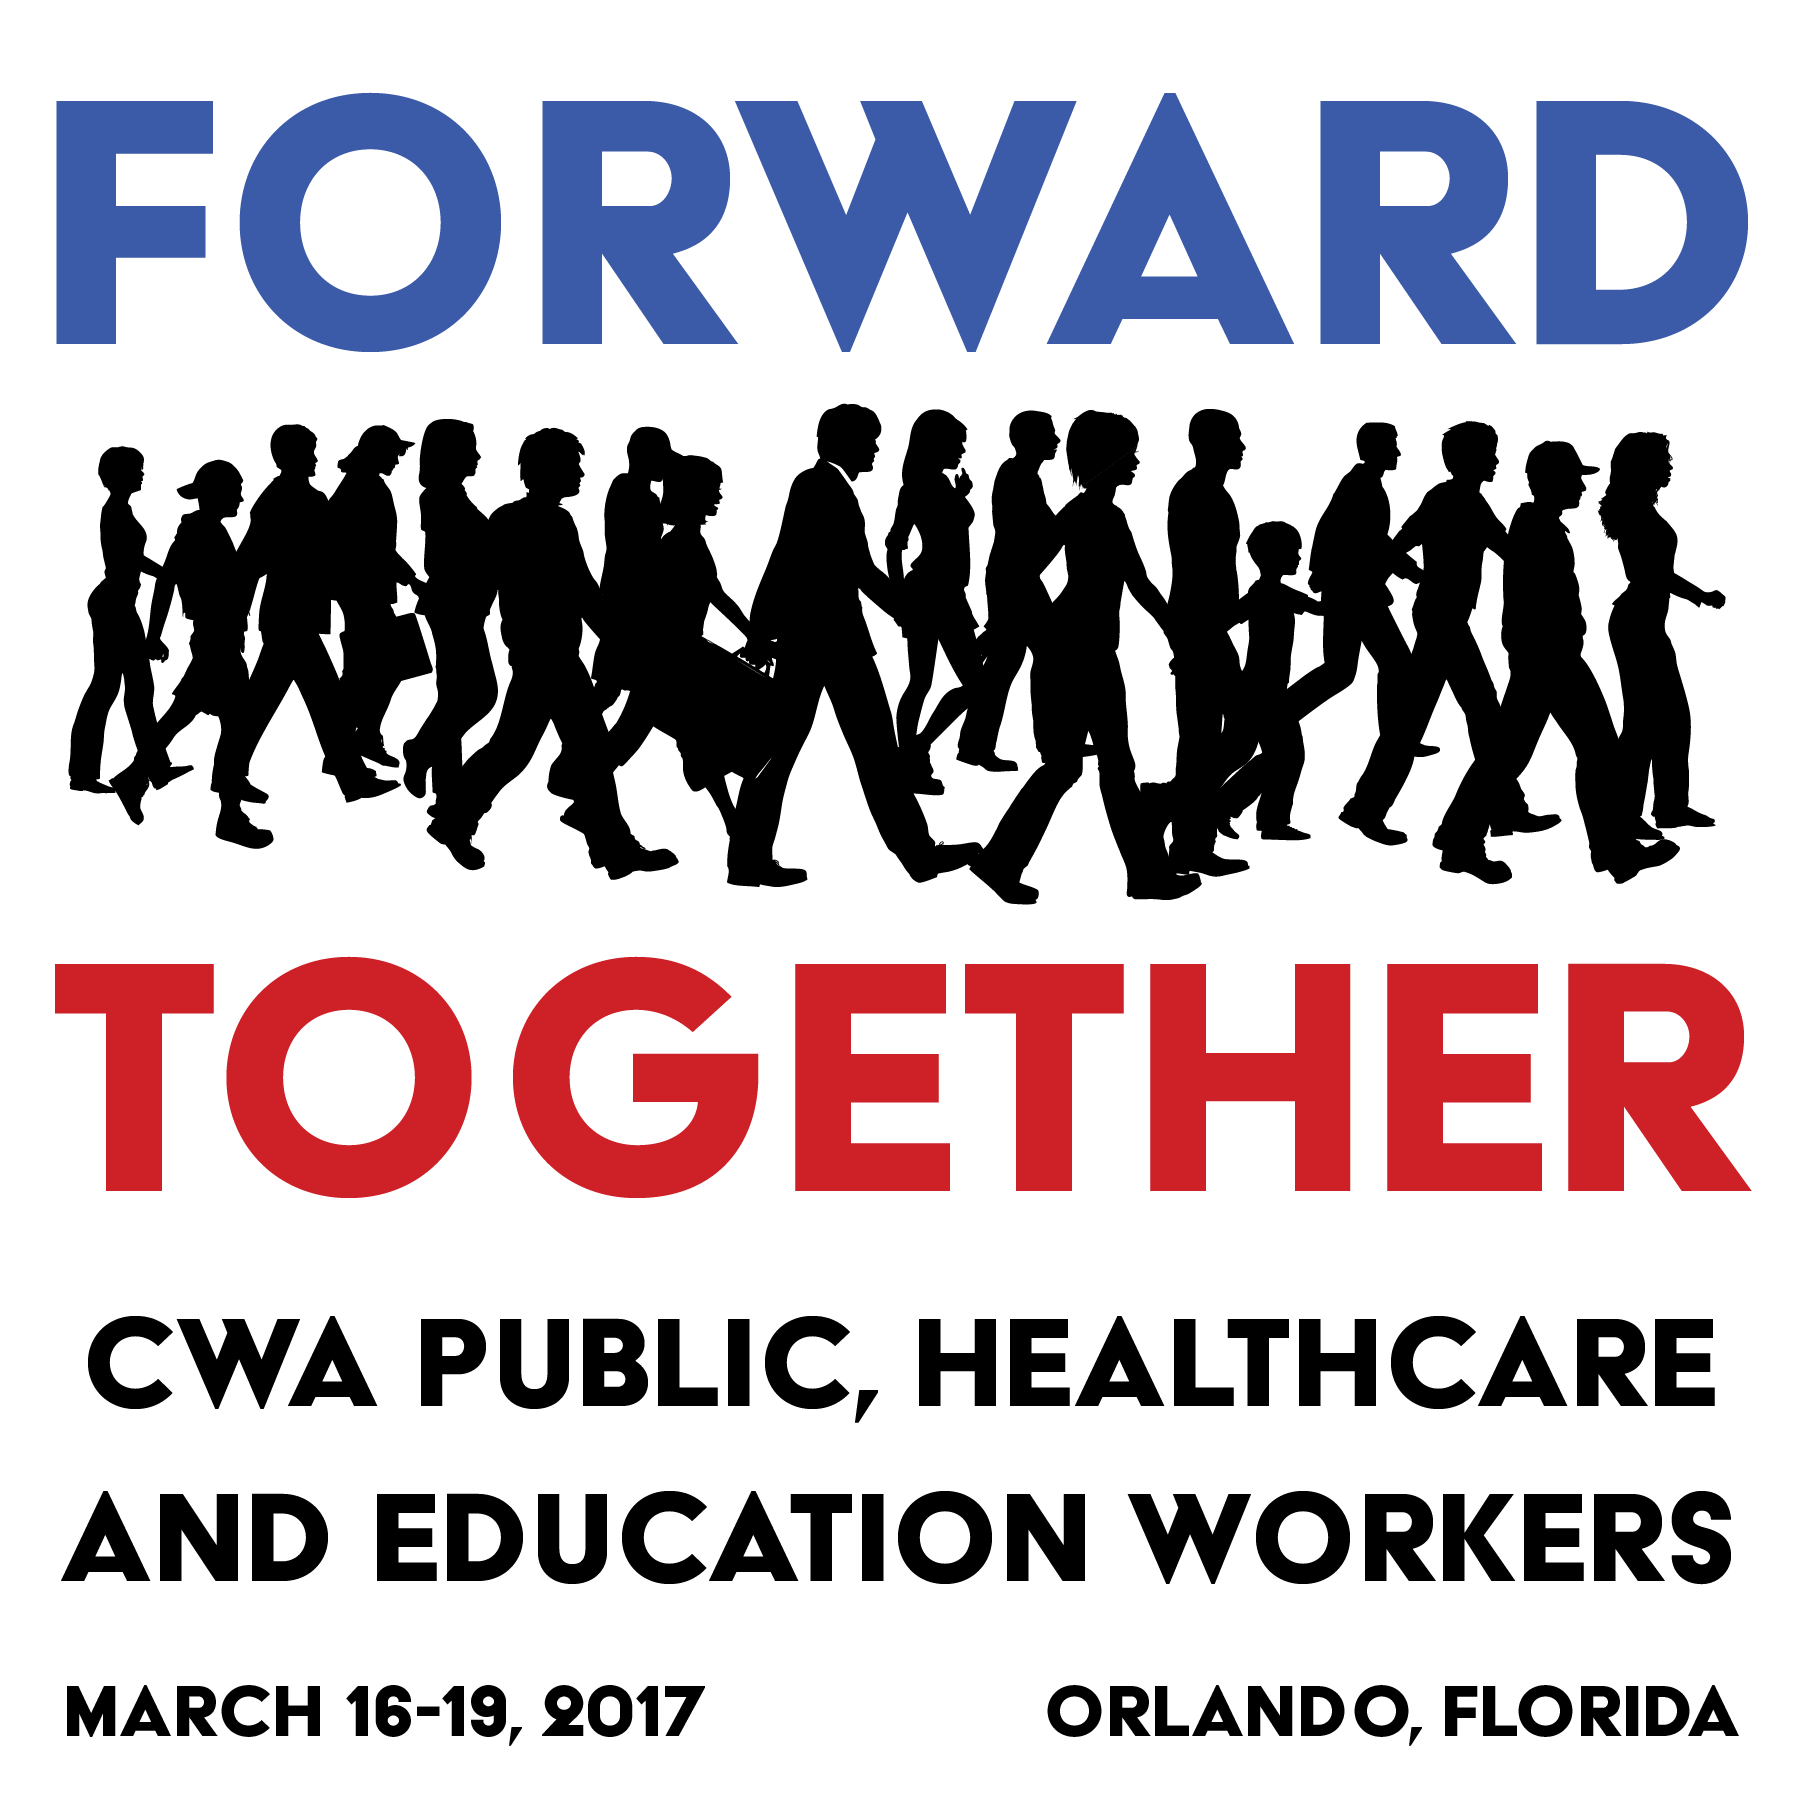 2017 Public, Healthcare & Education Workers Conference